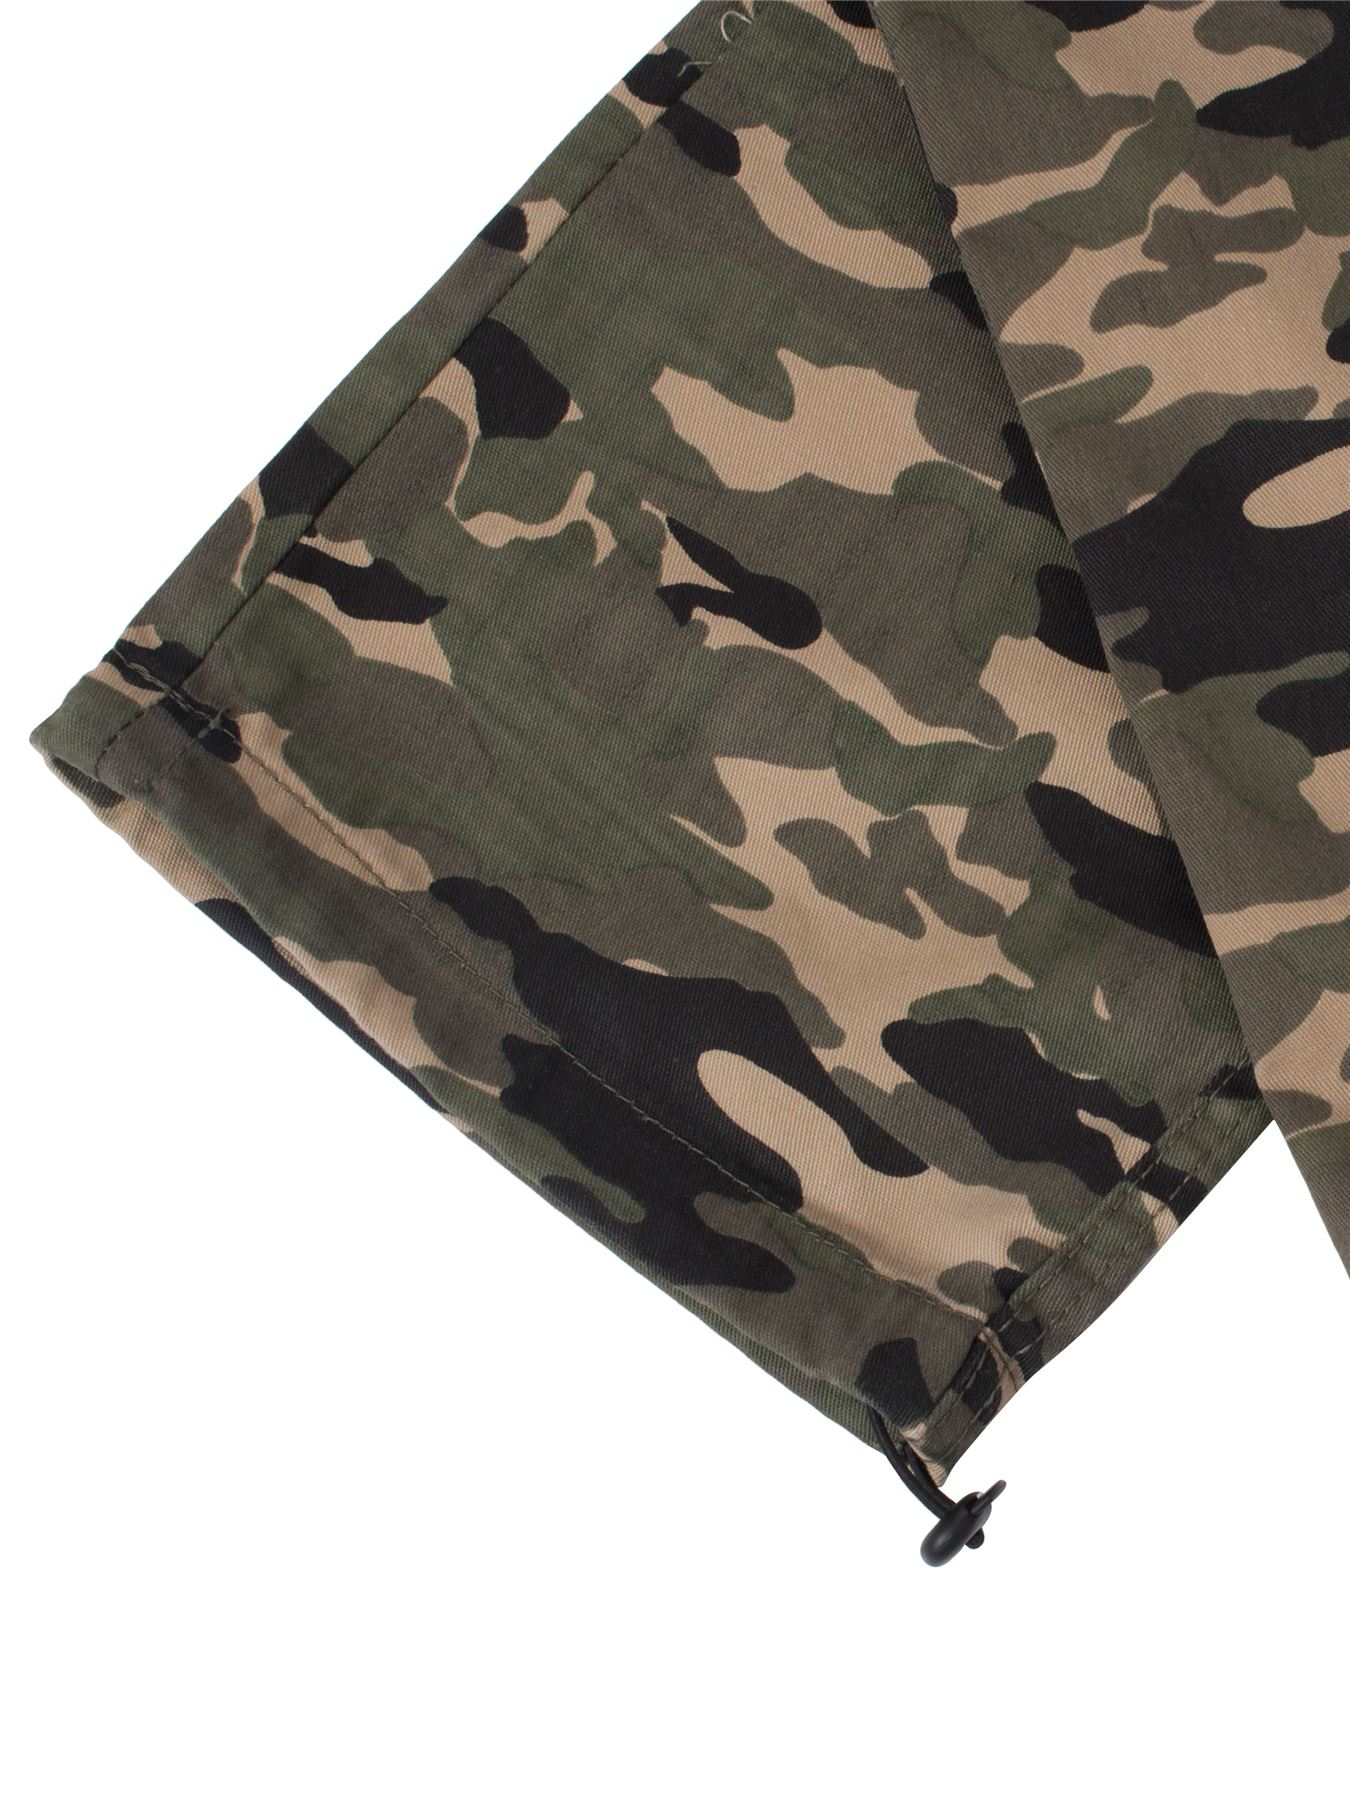 Kruze-Mens-Military-Combat-Trousers-Camouflage-Cargo-Camo-Army-Casual-Work-Pants miniatura 22